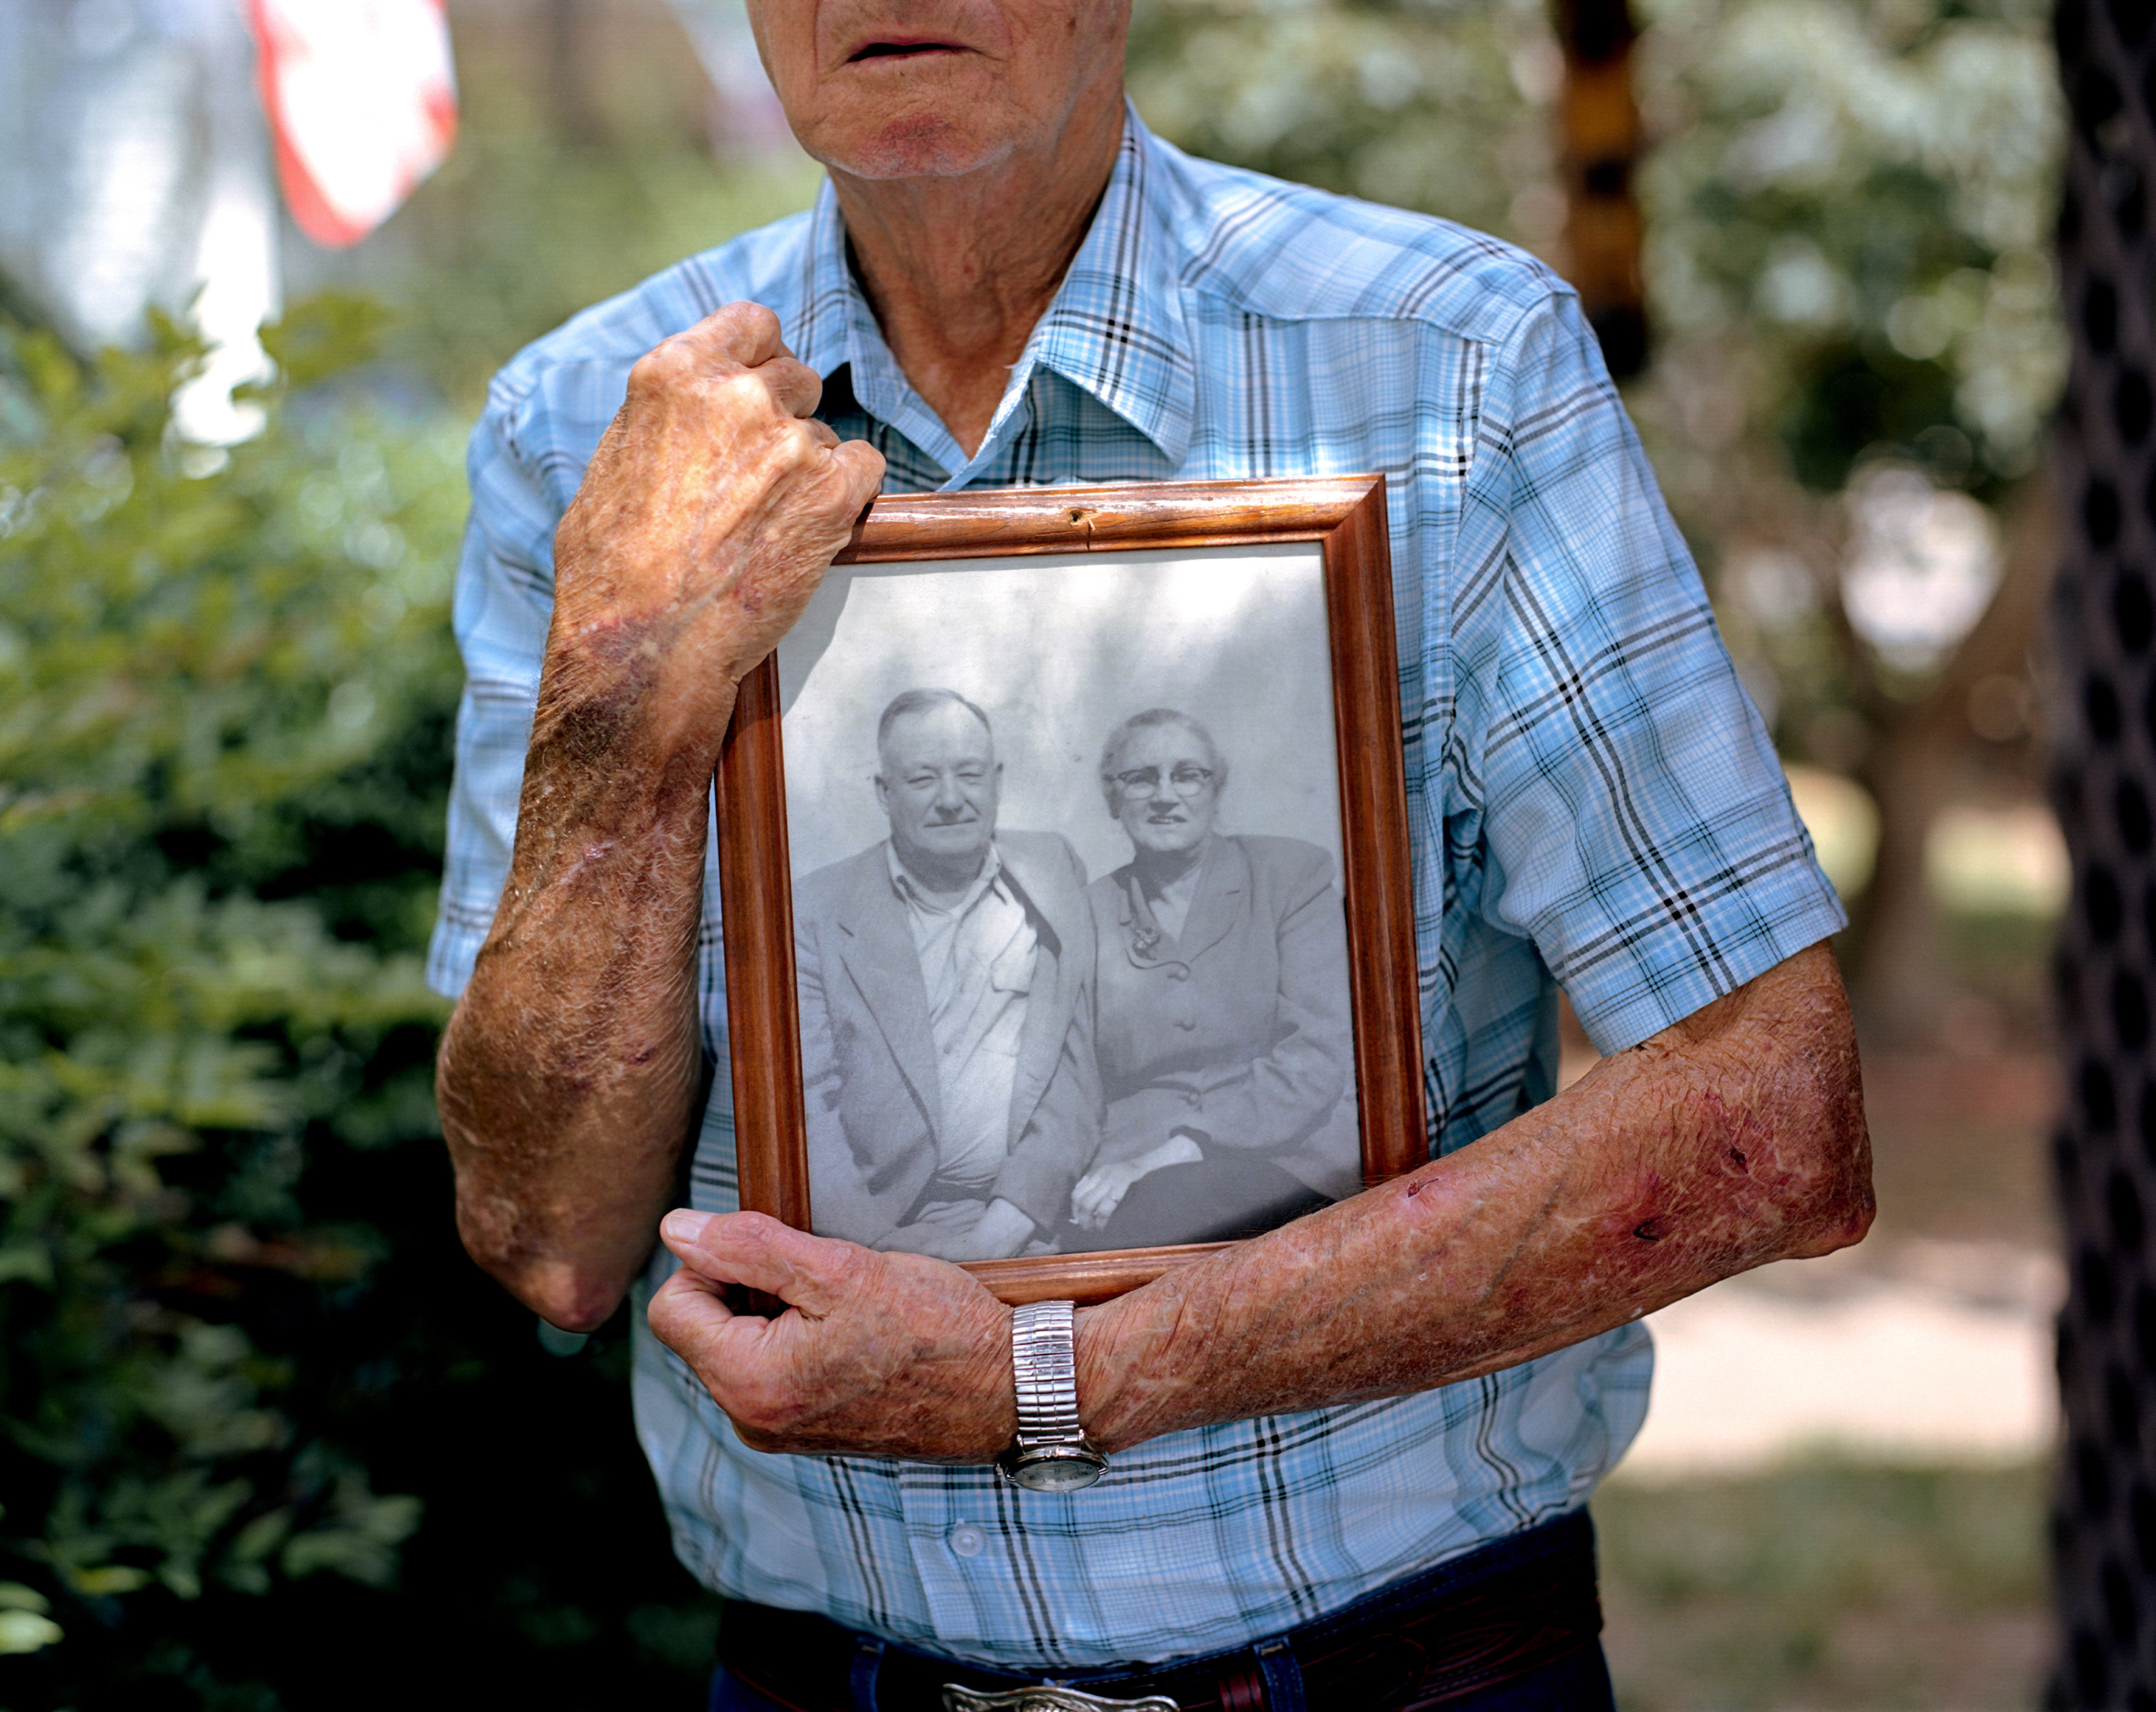 Gene Bowen holds a photograph of his parents at his home in LaGrange, Ga. Bowen was six years old when he awoke on a Sunday morning in 1940 to find his parents outside the home attending to a young African-American man, Austin Callaway, found bleeding to death on their property. The family wrapped the unconscious man in a bed sheet and rushed him to the local hospital, where he succumbed to his wounds. Callaway had been arrested the evening before. An armed group of hooded men snatched him from police custody without resistance, drove him to the edge of town, shot him multiple times and had left him to die.